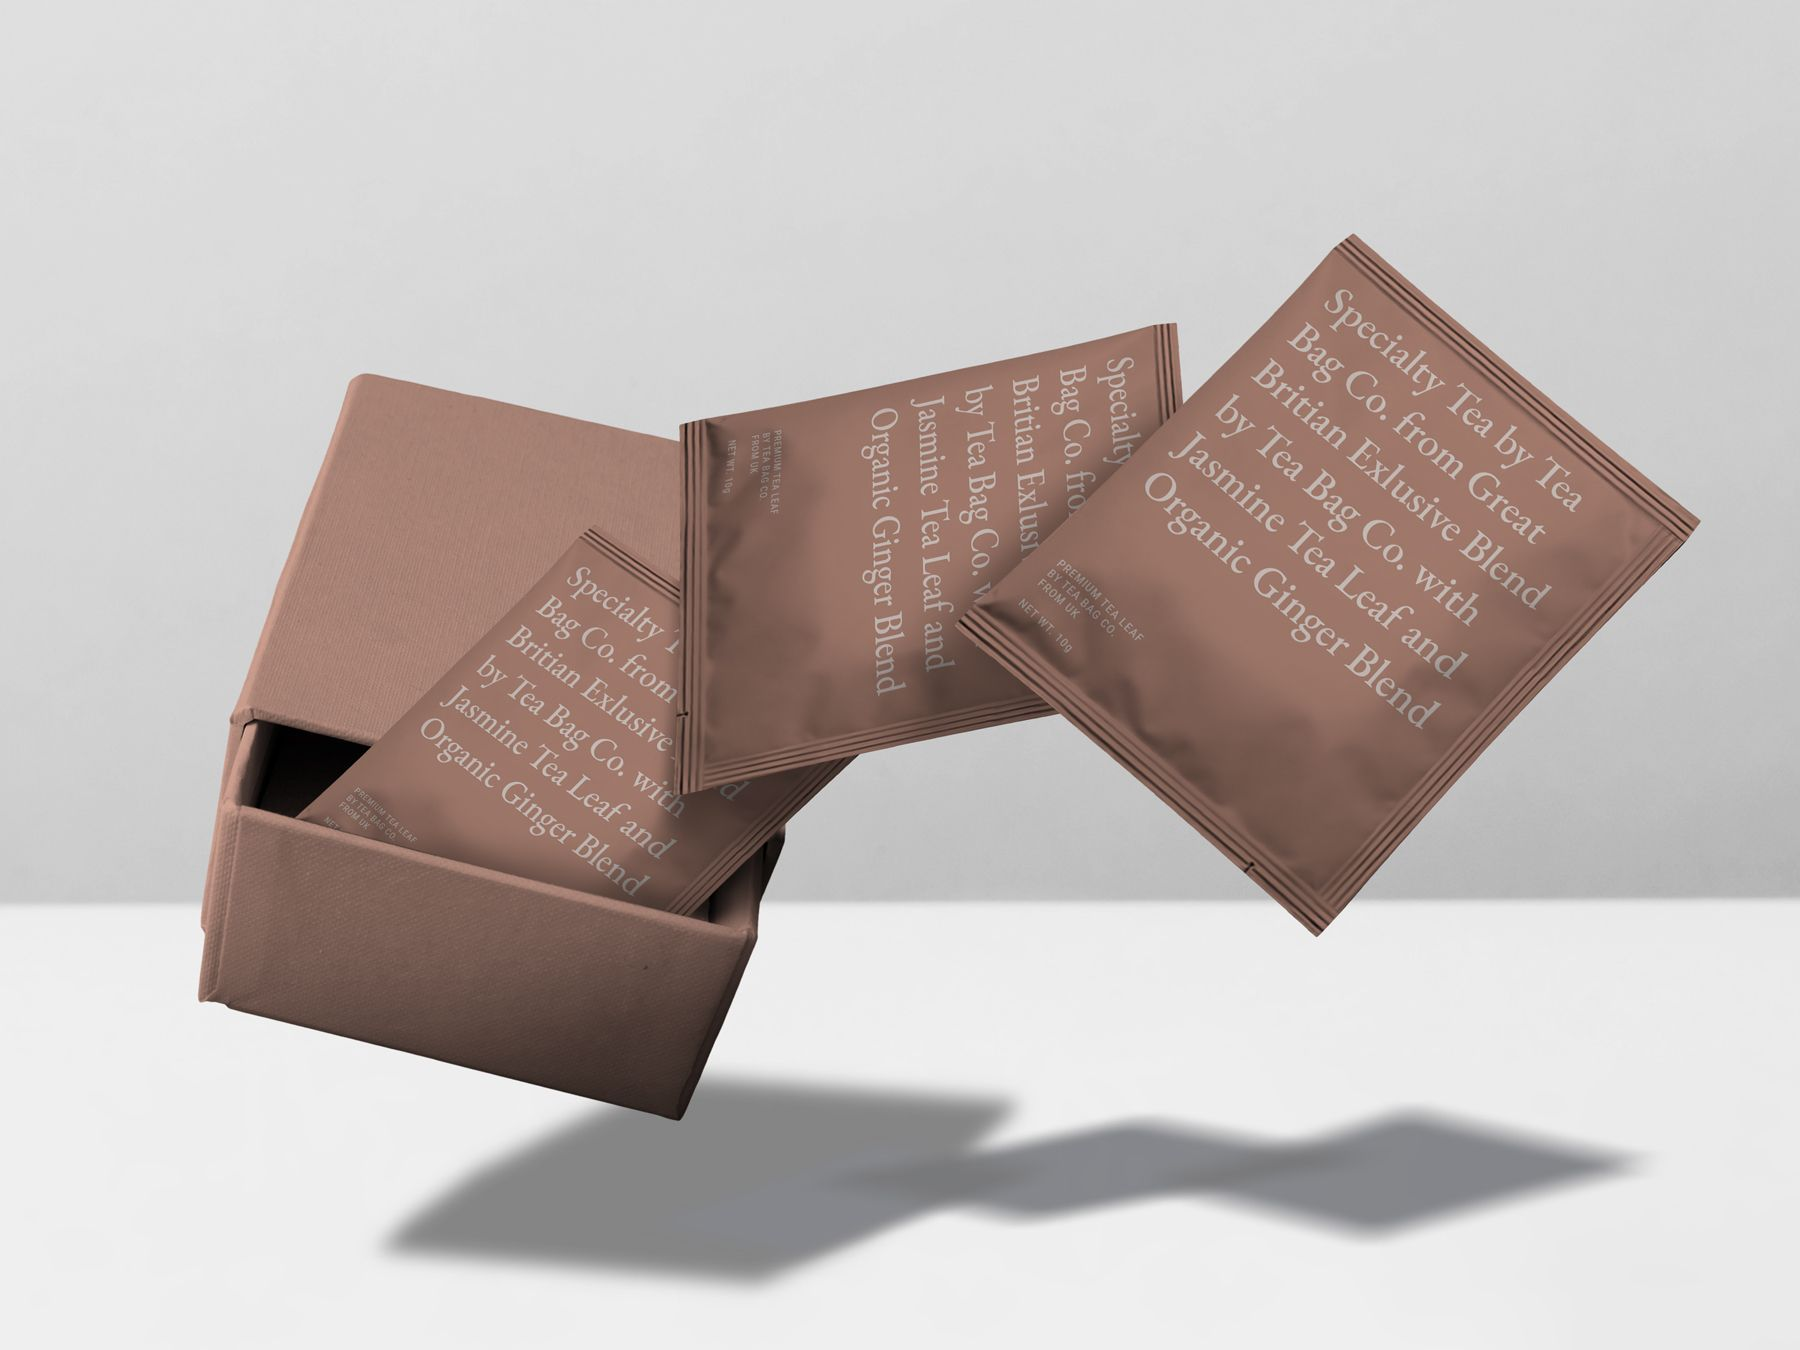 Download Chai Tea Bag Sealed Bag Mockup Bag Mockup Tea Bag Chai Tea